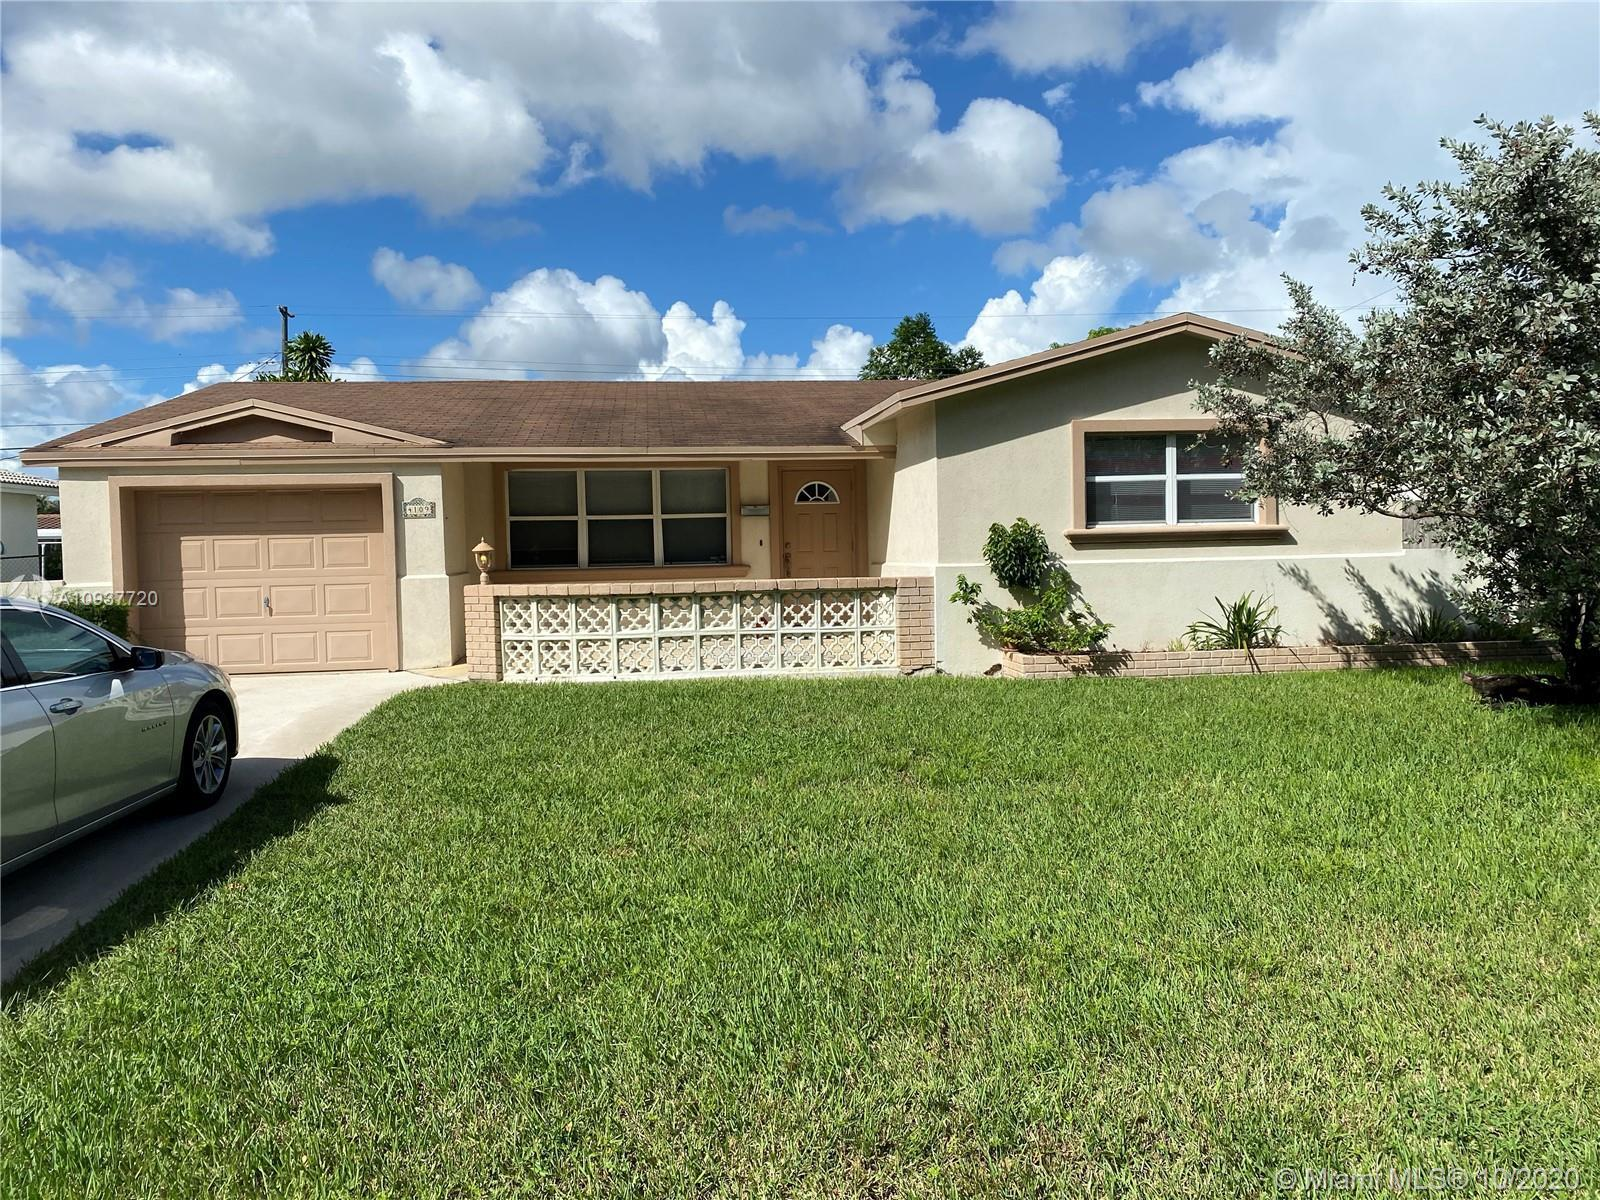 Incredible Home in the Heart of Hollywood, Florida. Close to the Memorial Hospital and some of the b